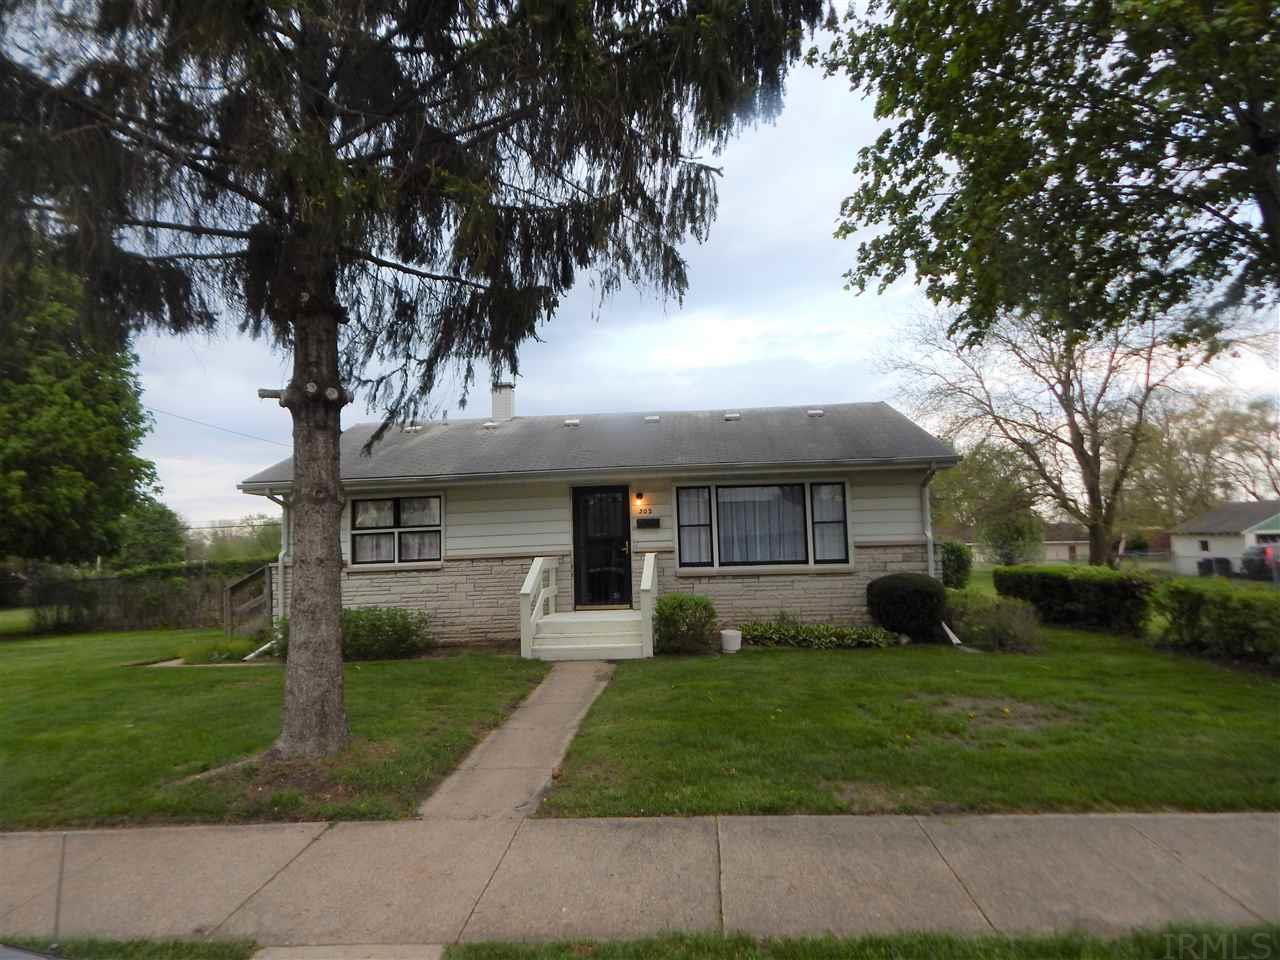 302 S Falcon South Bend, IN 46619